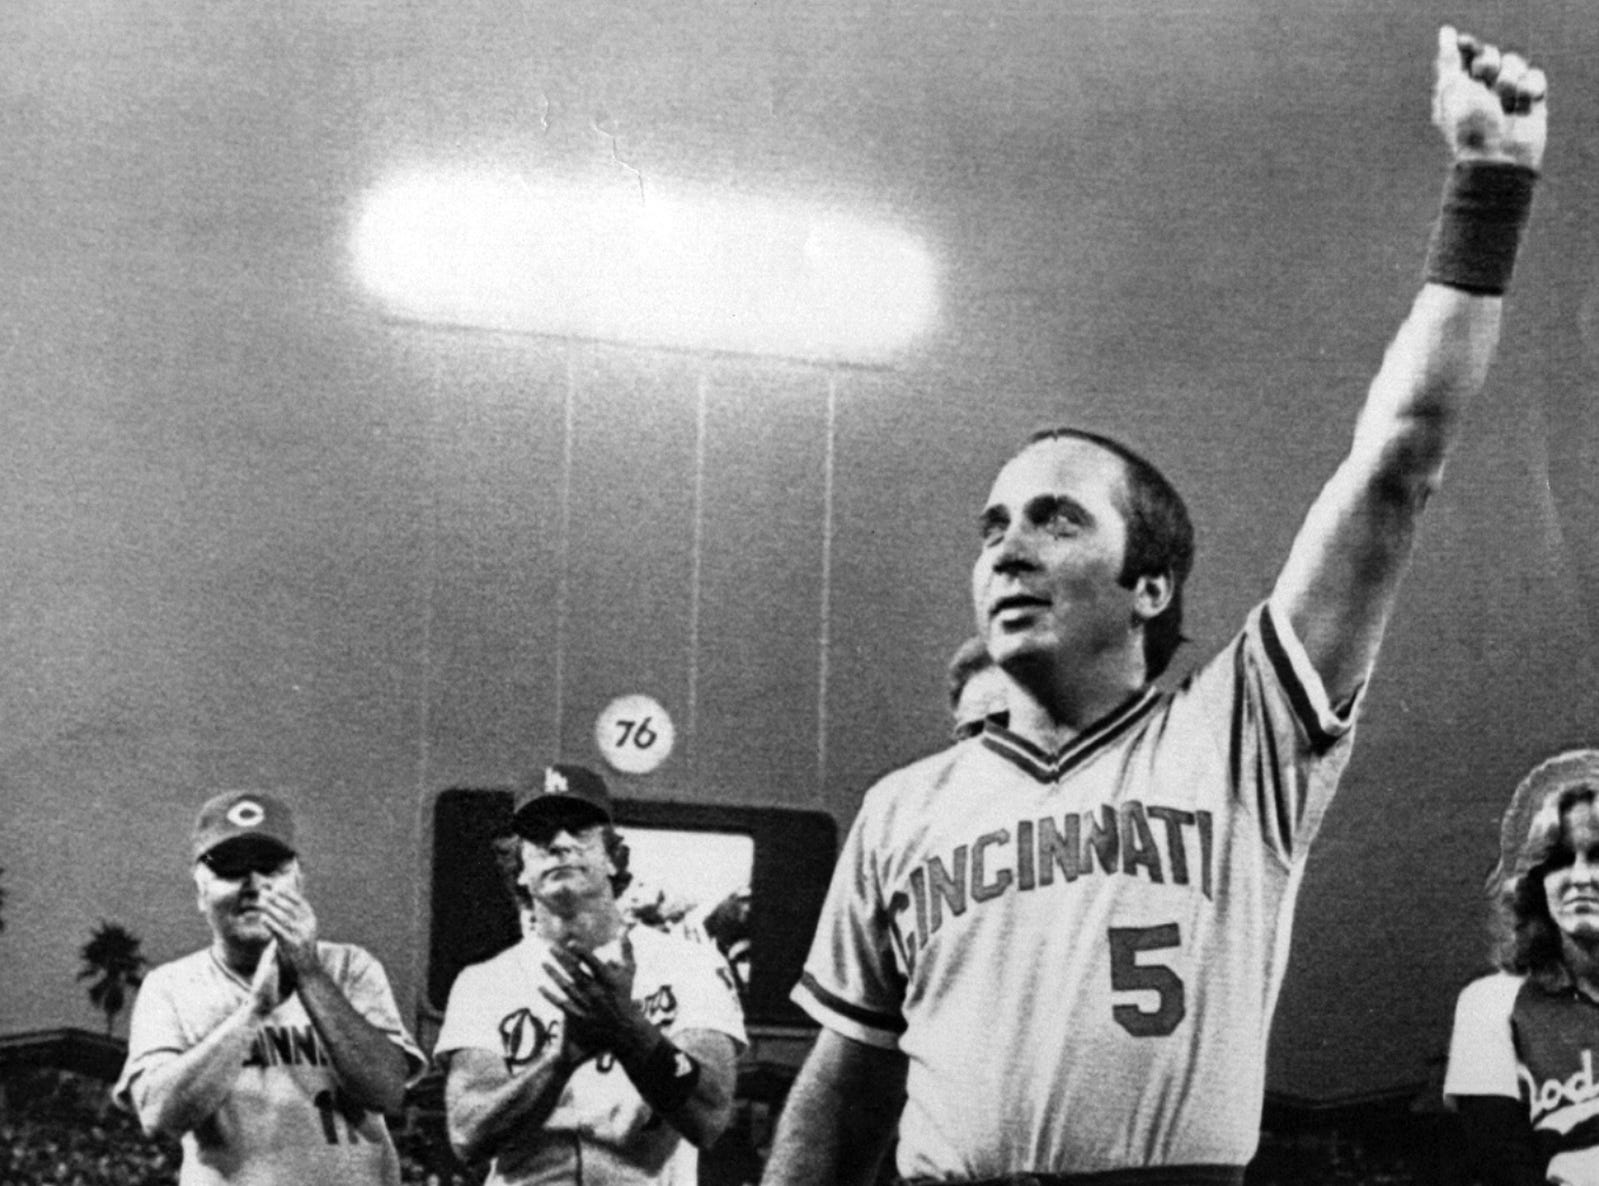 SEPTEMBER 8, 1983: Cincinnati Reds catcher Johnny Bench waves farewell to the fans during a special pre-game presentation at Dodger Stadium Wednesday night. This is the last Dodgers-Reds series in Los Angeles before Bench's retirement. Taking part in the ceremonies were comedian-celebrity Jonathan Winters, in Reds uniform at left, and Dodgers catcher Steve Yeager, center. AP Photo/Doug Pizac scanned August 23, 2013